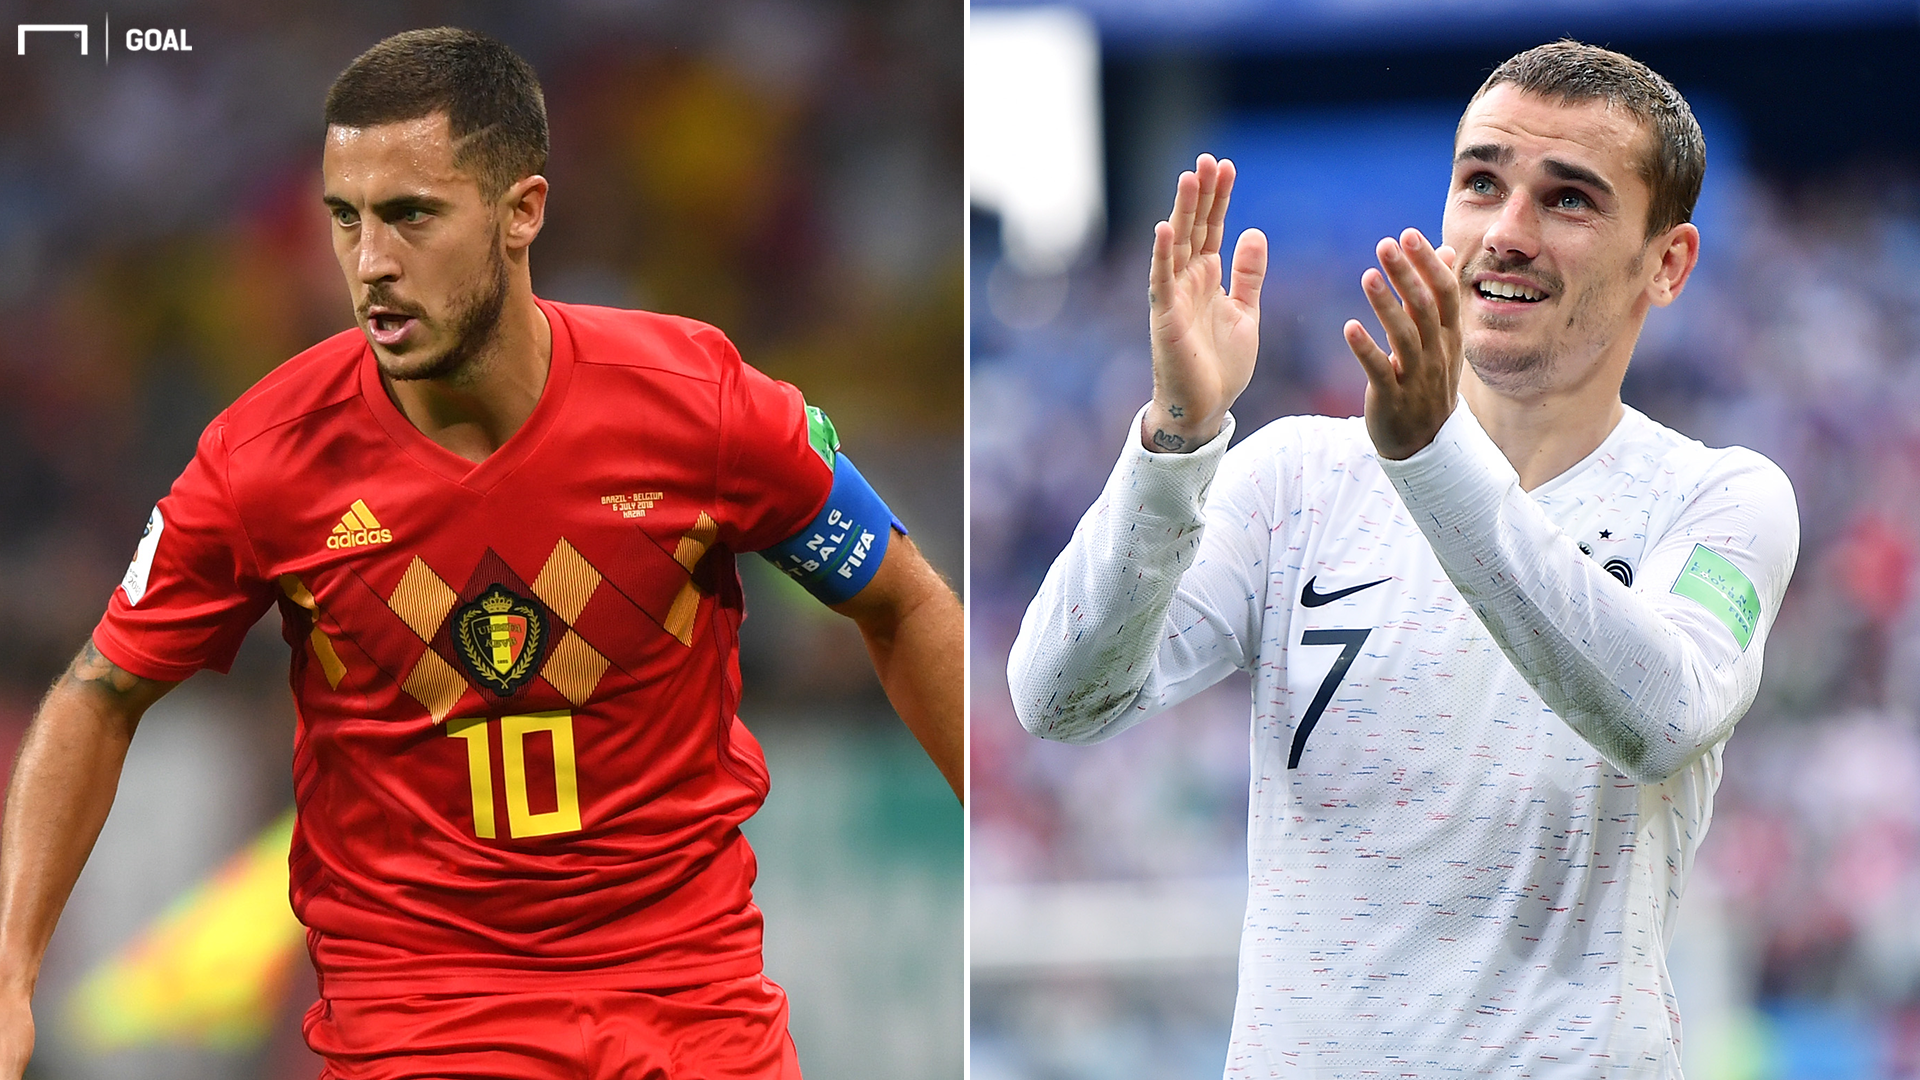 France vs. Belgium - Football Match Report